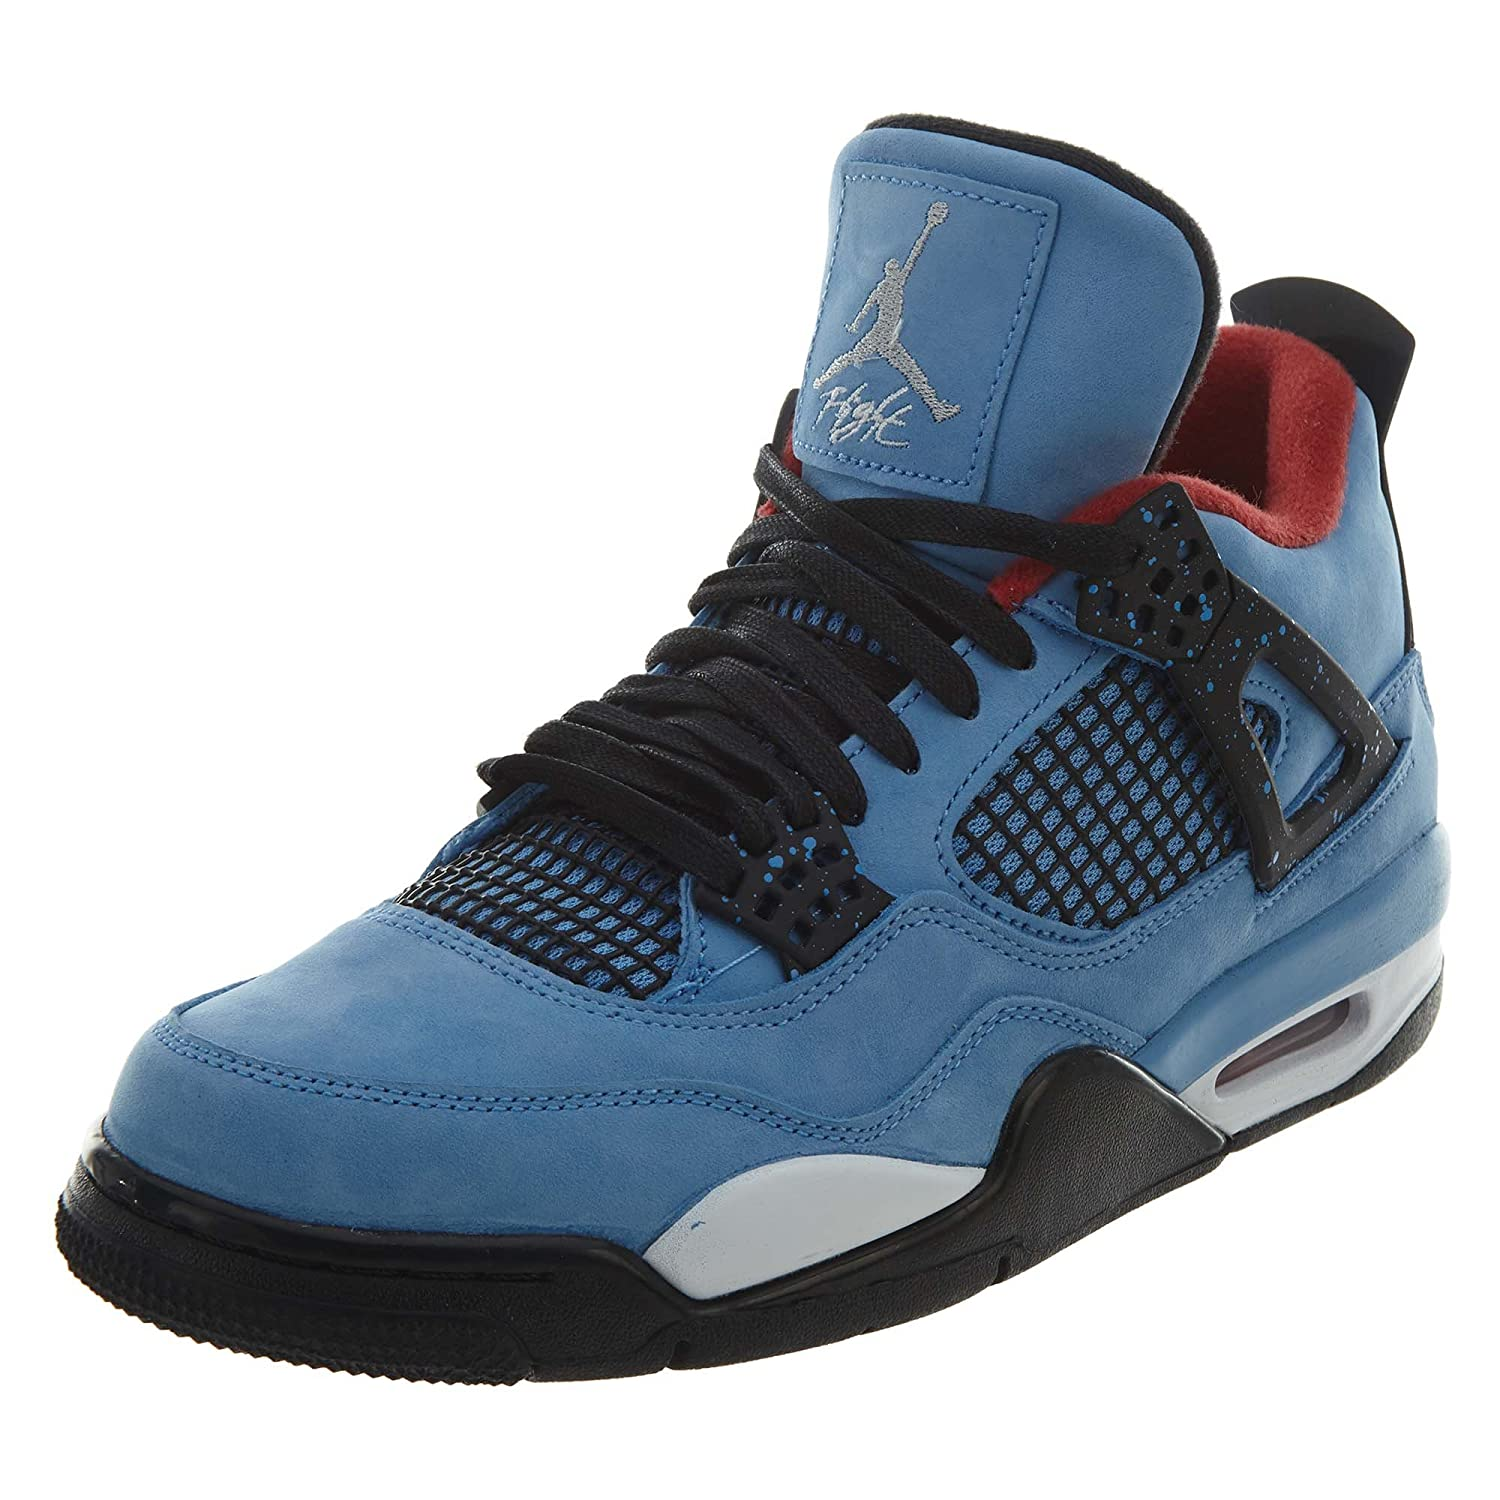 online store 4a5e8 4957c Amazon.com | Jordan Air 4 Retro - US 13 | Basketball